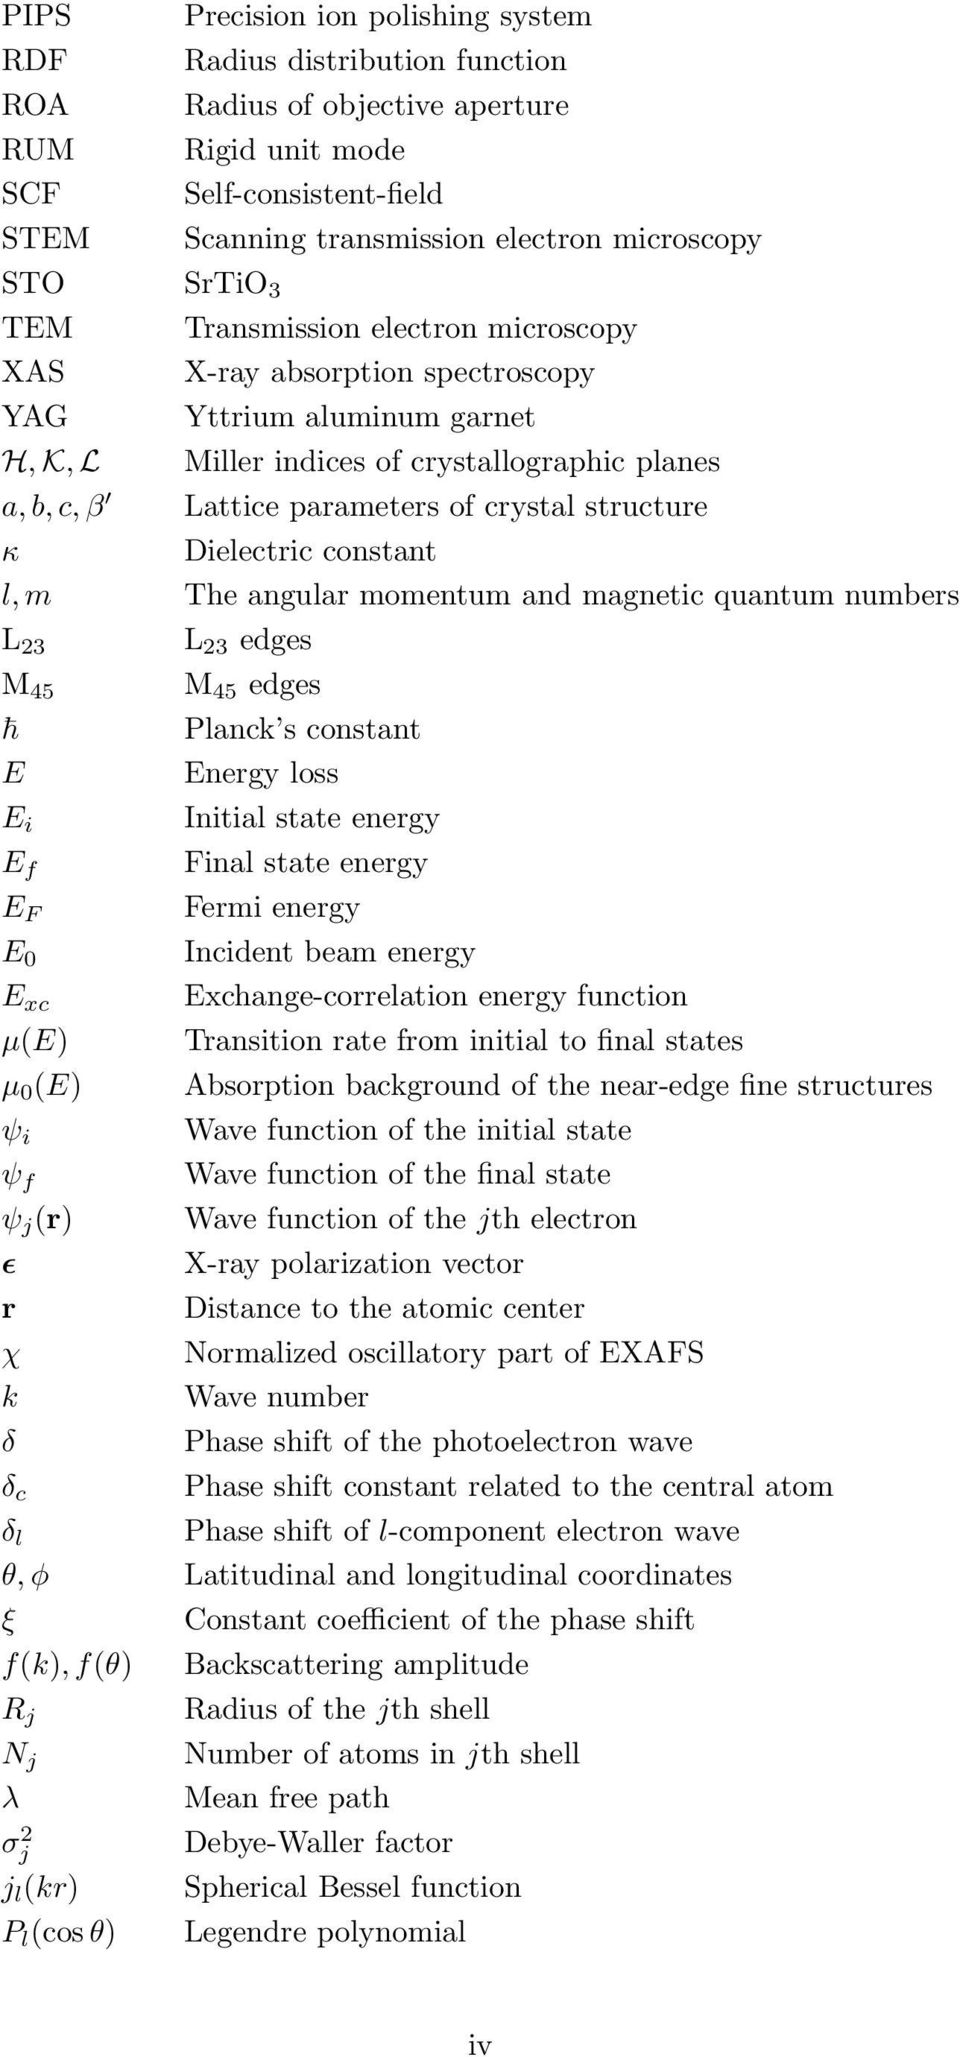 structure κ Dielectric constant l, m The angular momentum and magnetic quantum numbers L 23 L 23 edges M 45 M 45 edges Planck s constant E Energy loss E i Initial state energy E f Final state energy